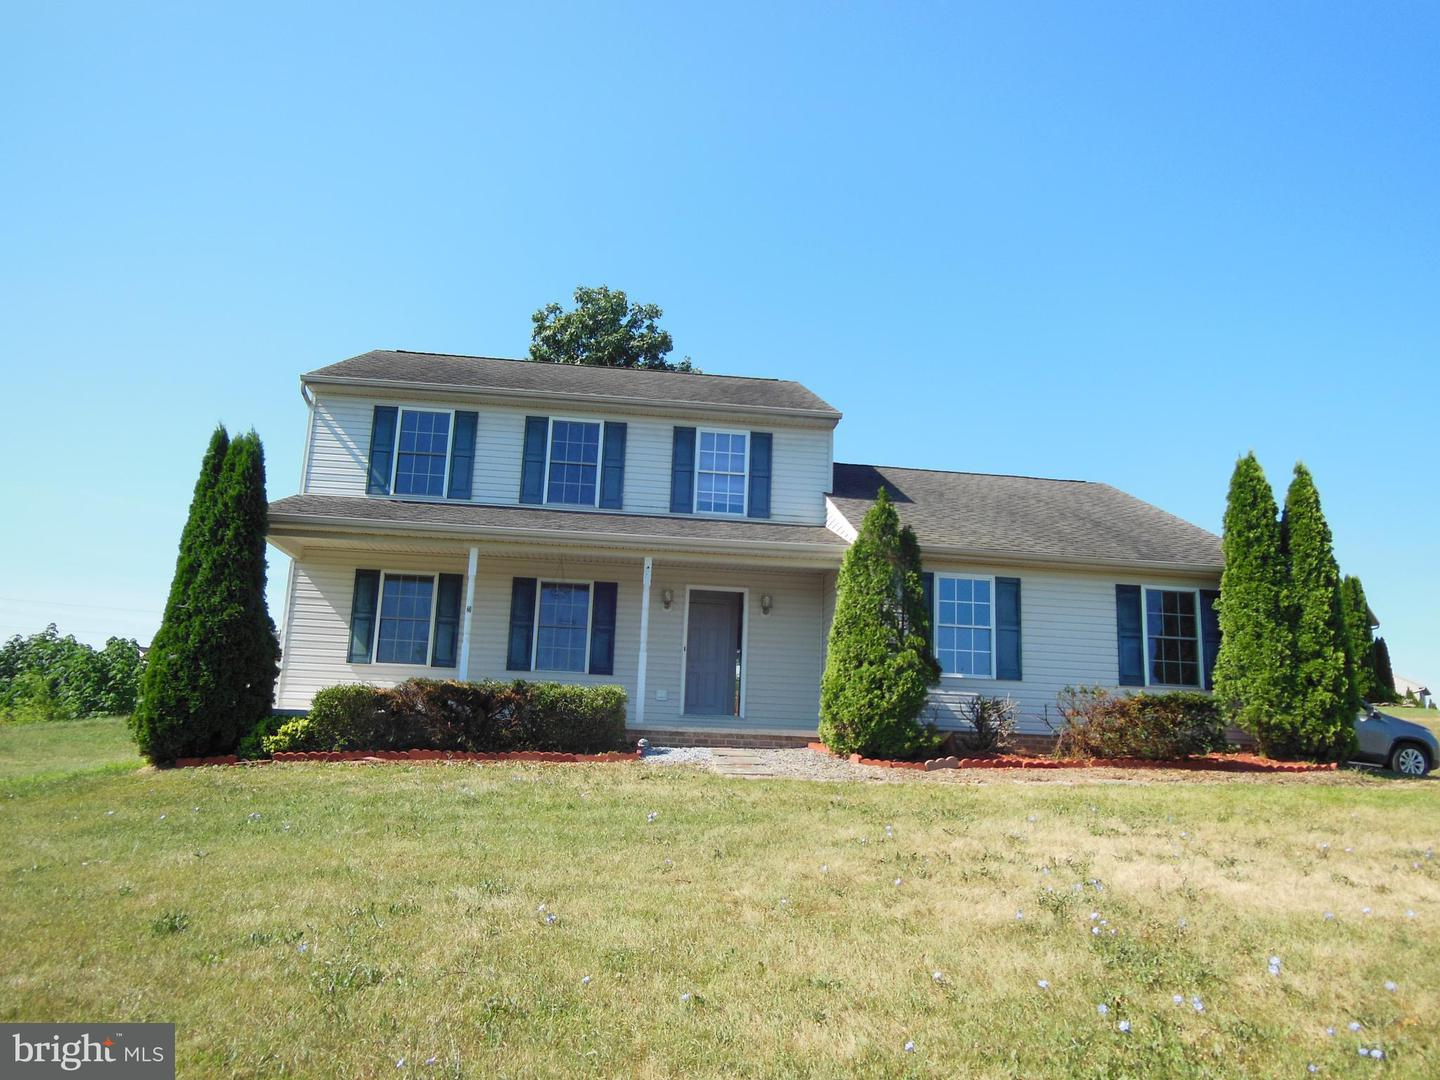 Other Residential for Rent at 445 Michigan Dr Falling Waters, West Virginia 25419 United States